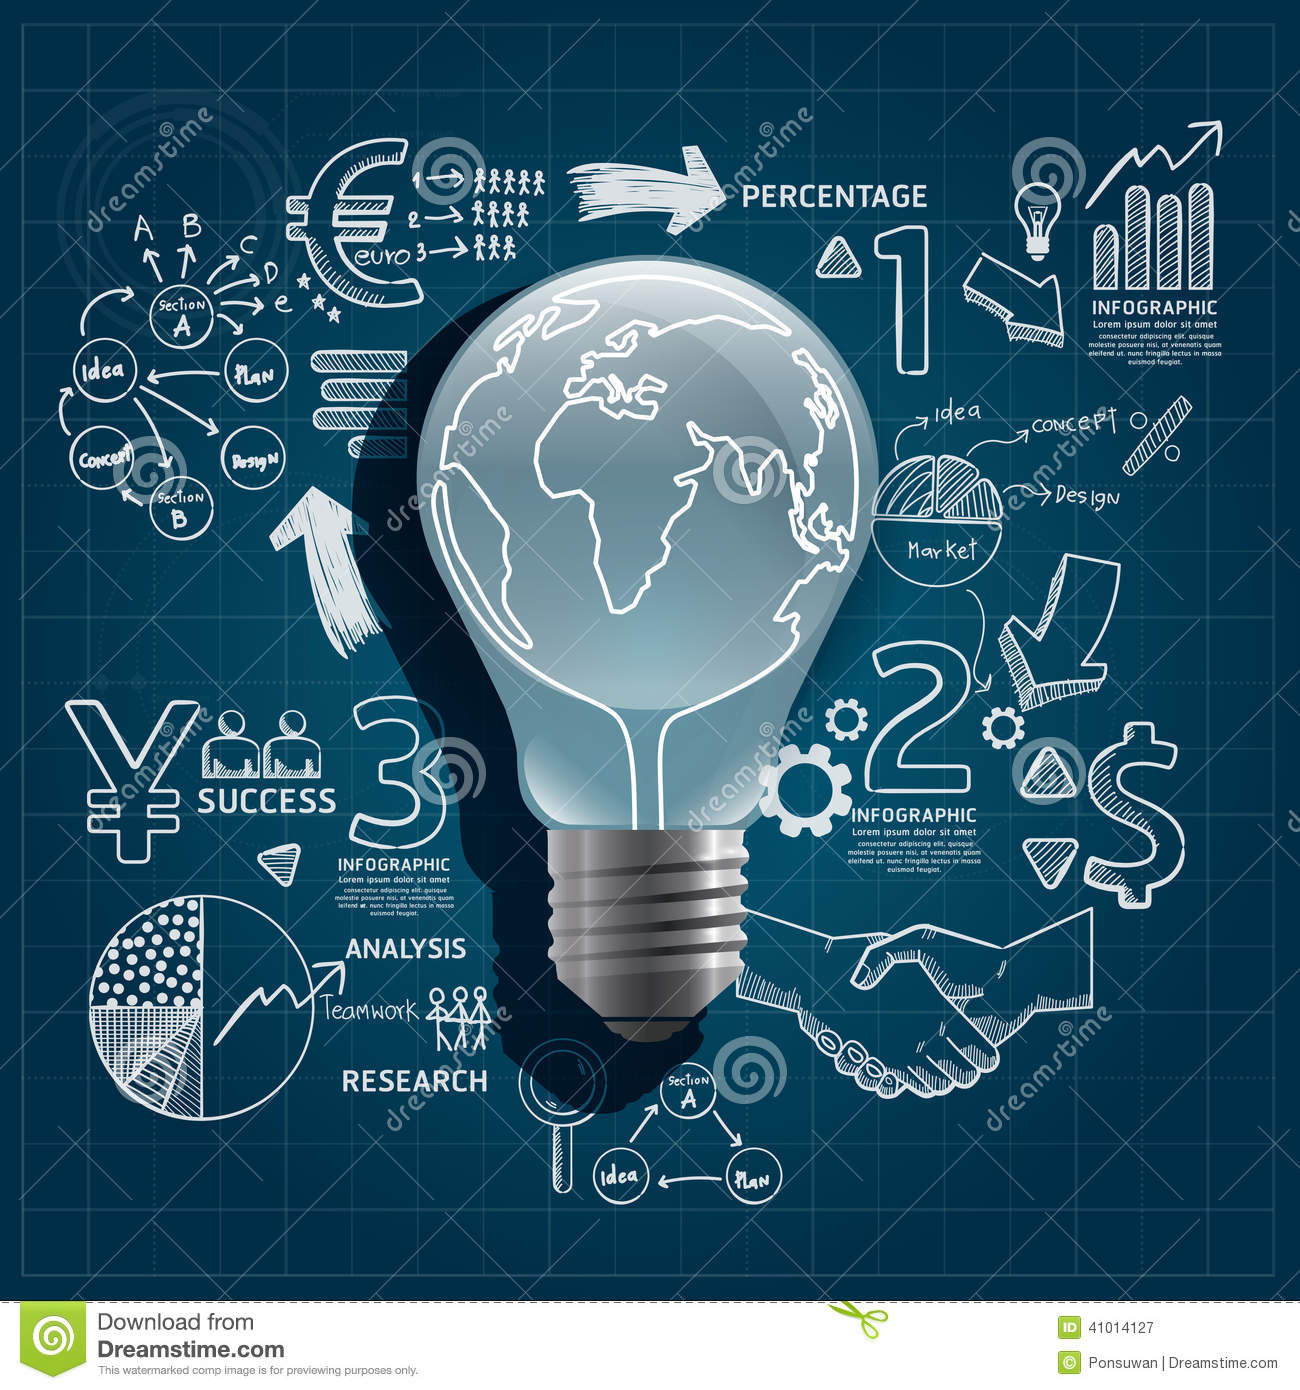 blueprint to success A blueprint for using data to its full potential and enabling leaders to become innovators, while mitigating the risks associated with change.